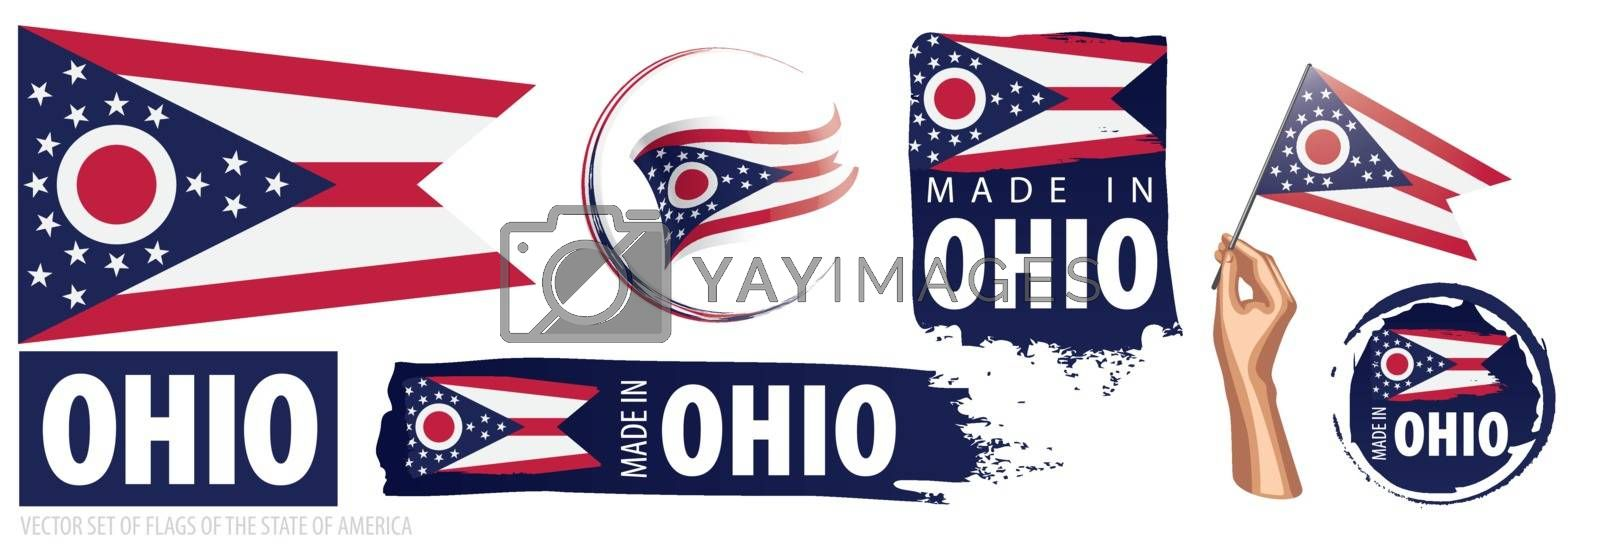 Vector set of flags of the American state of Ohio in different designs.